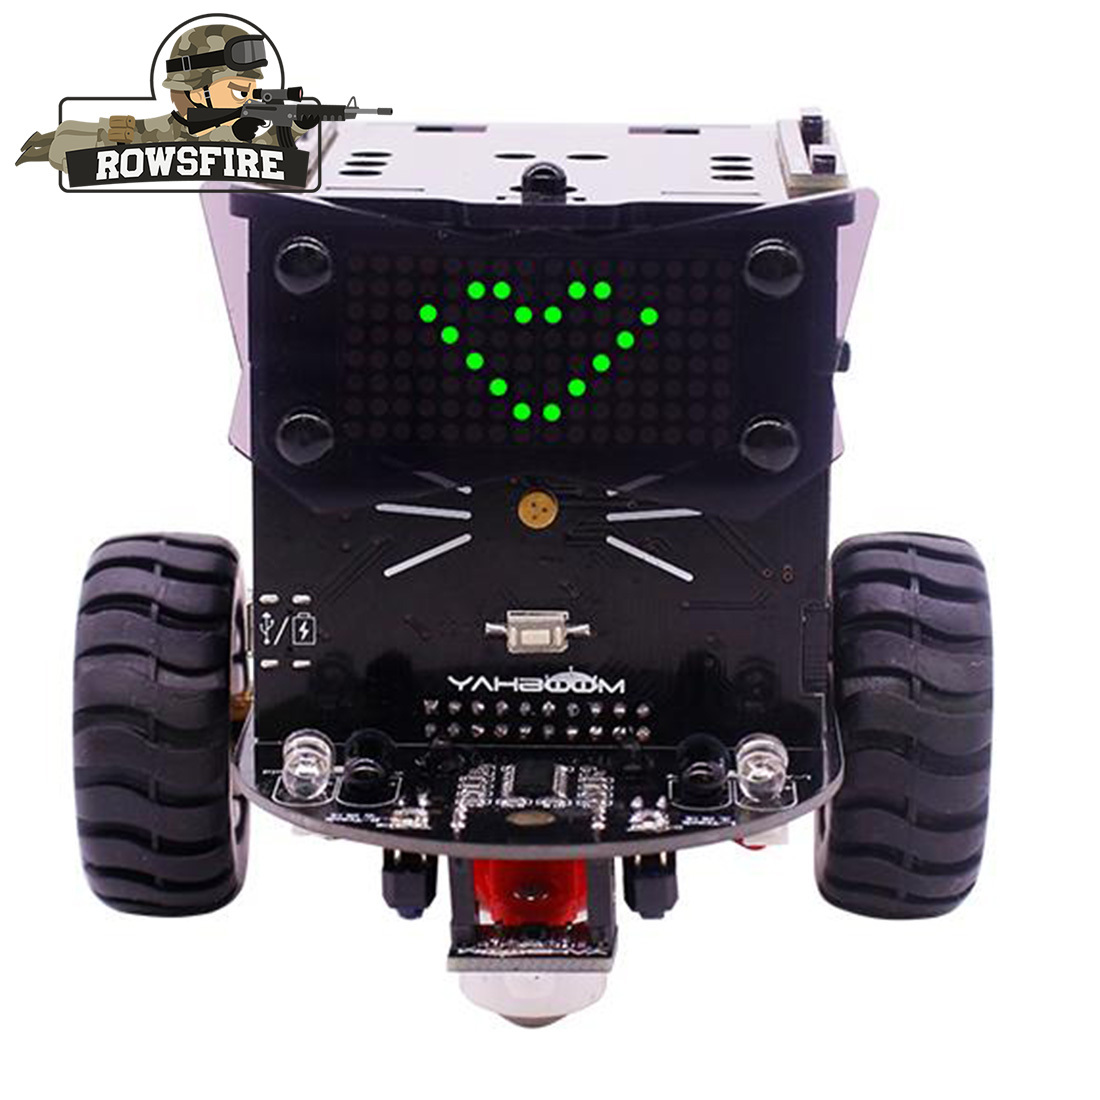 2019 New Hot 1 Set Standard Version Omibox Scratch Programmable Robot Car Kit